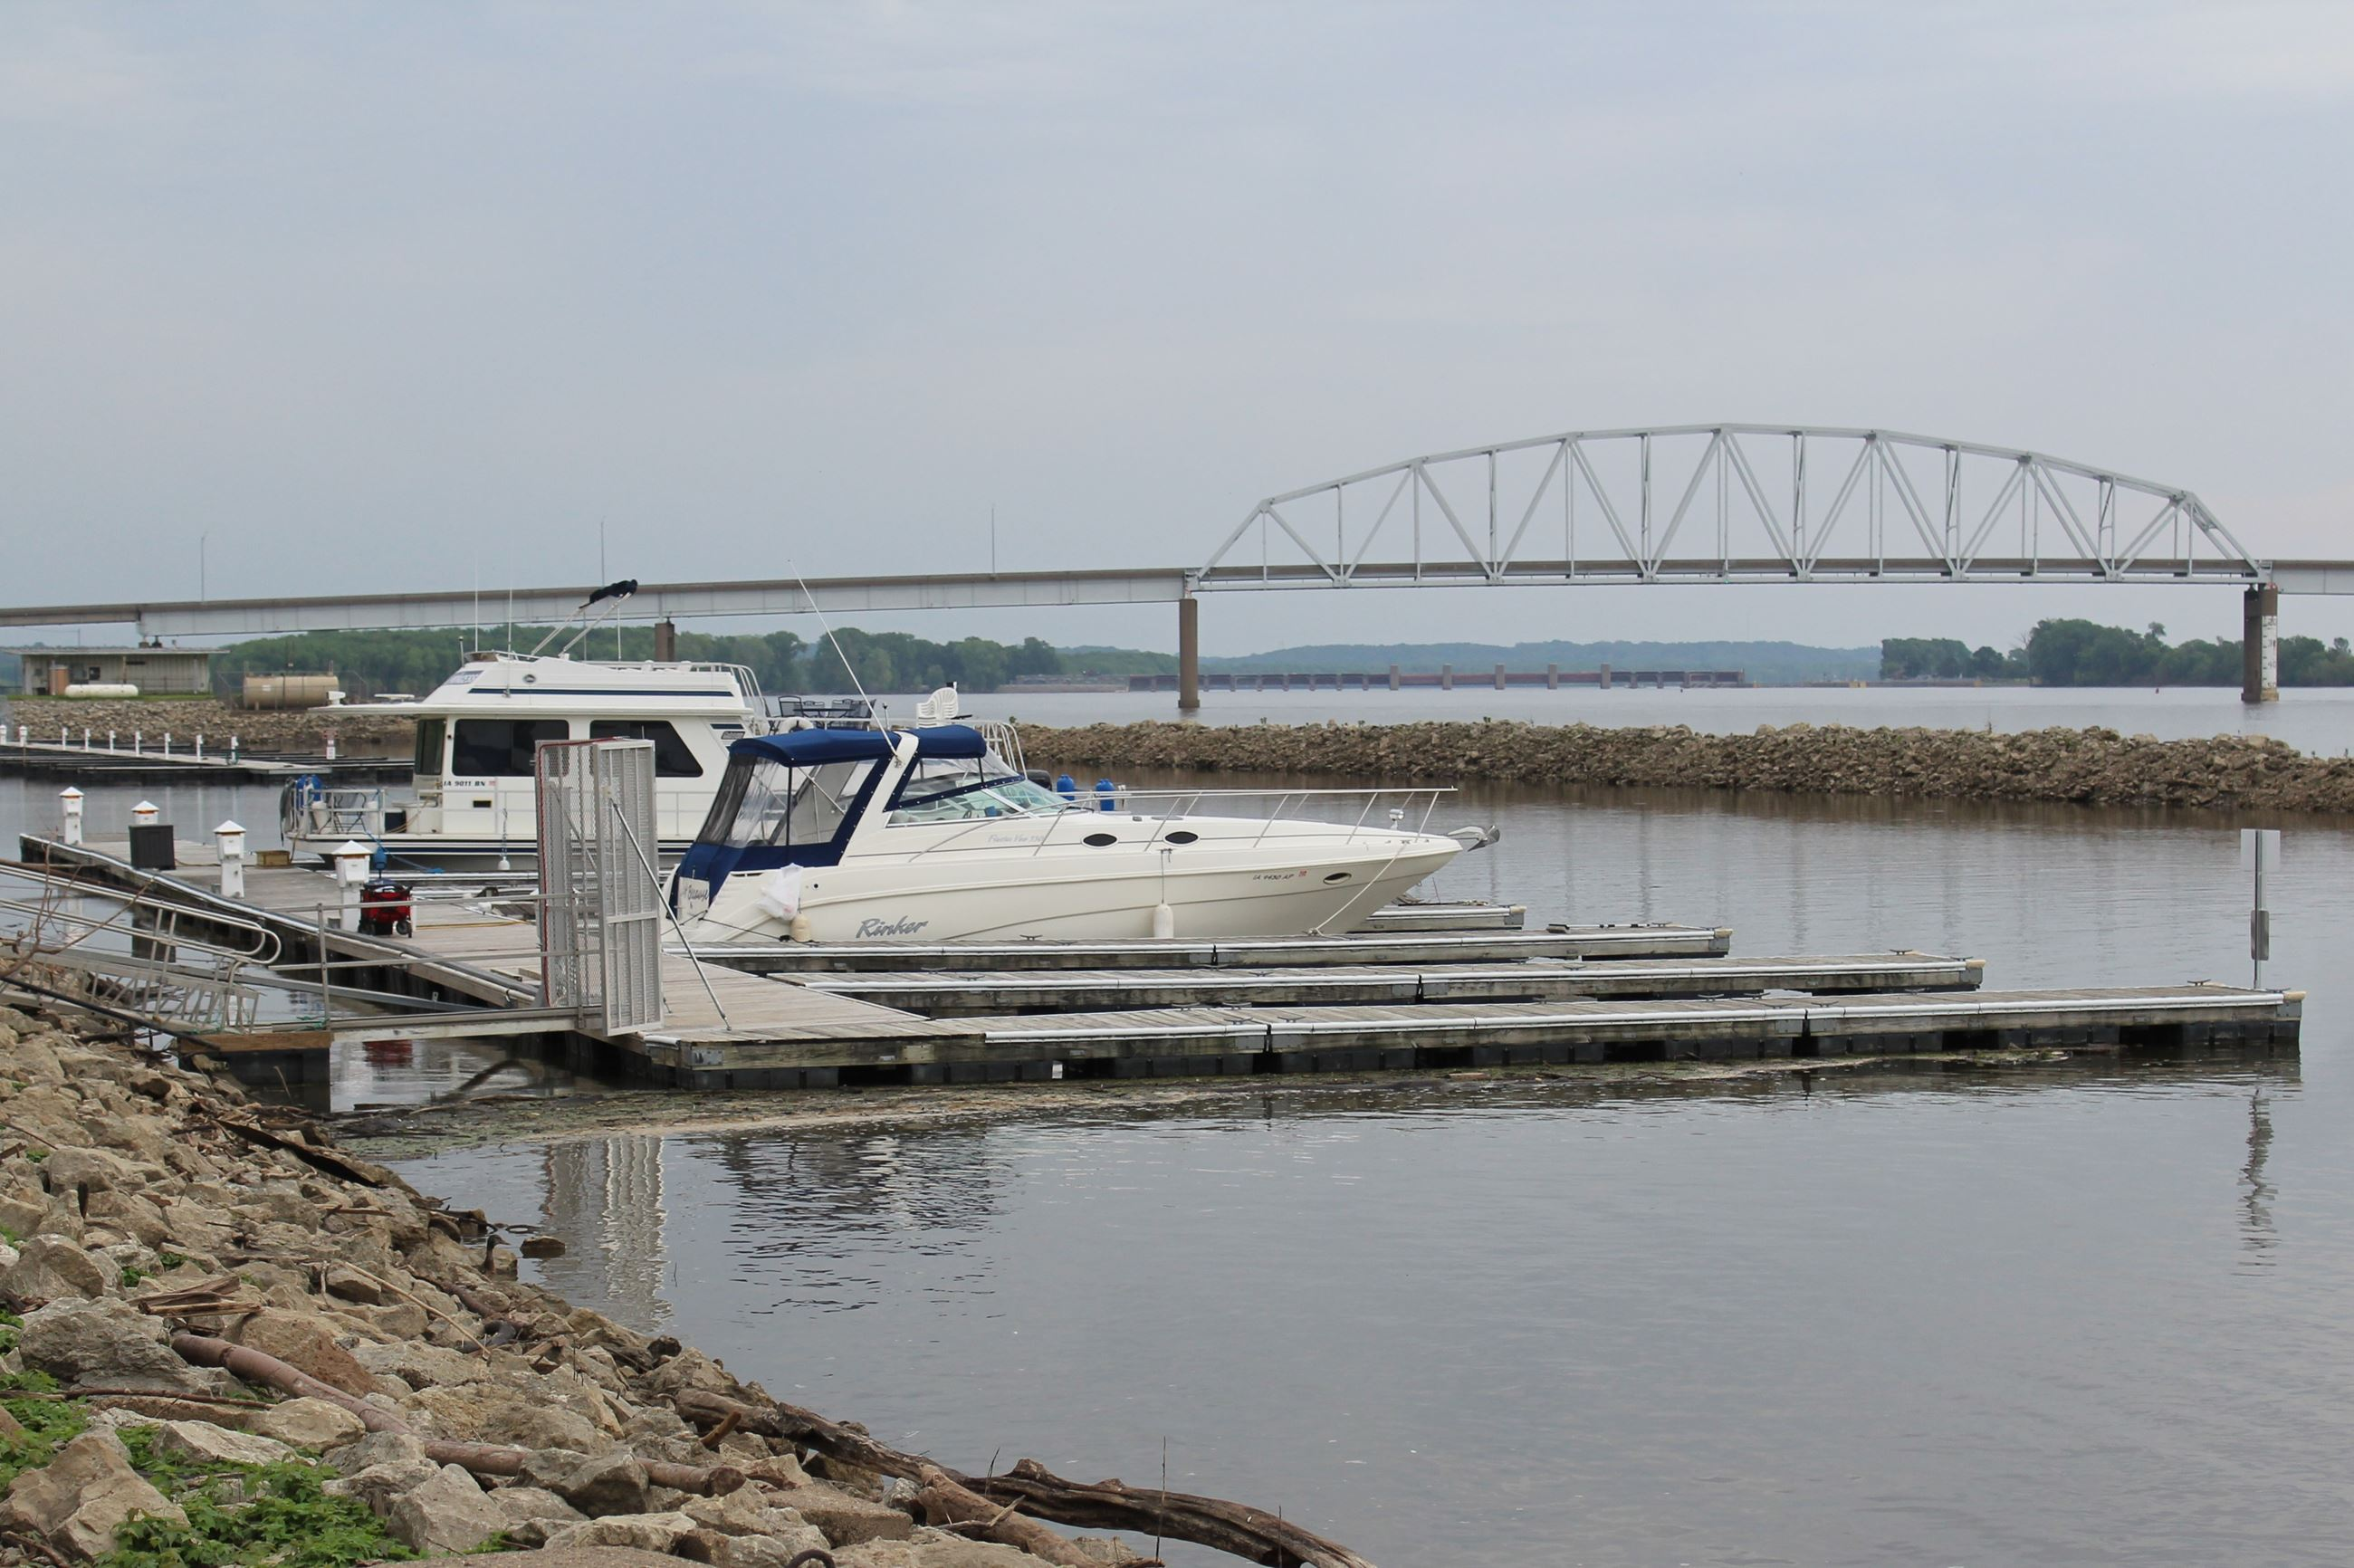 Muscatine Marina reopens as flood recedes June 28, 2019 (JPG)